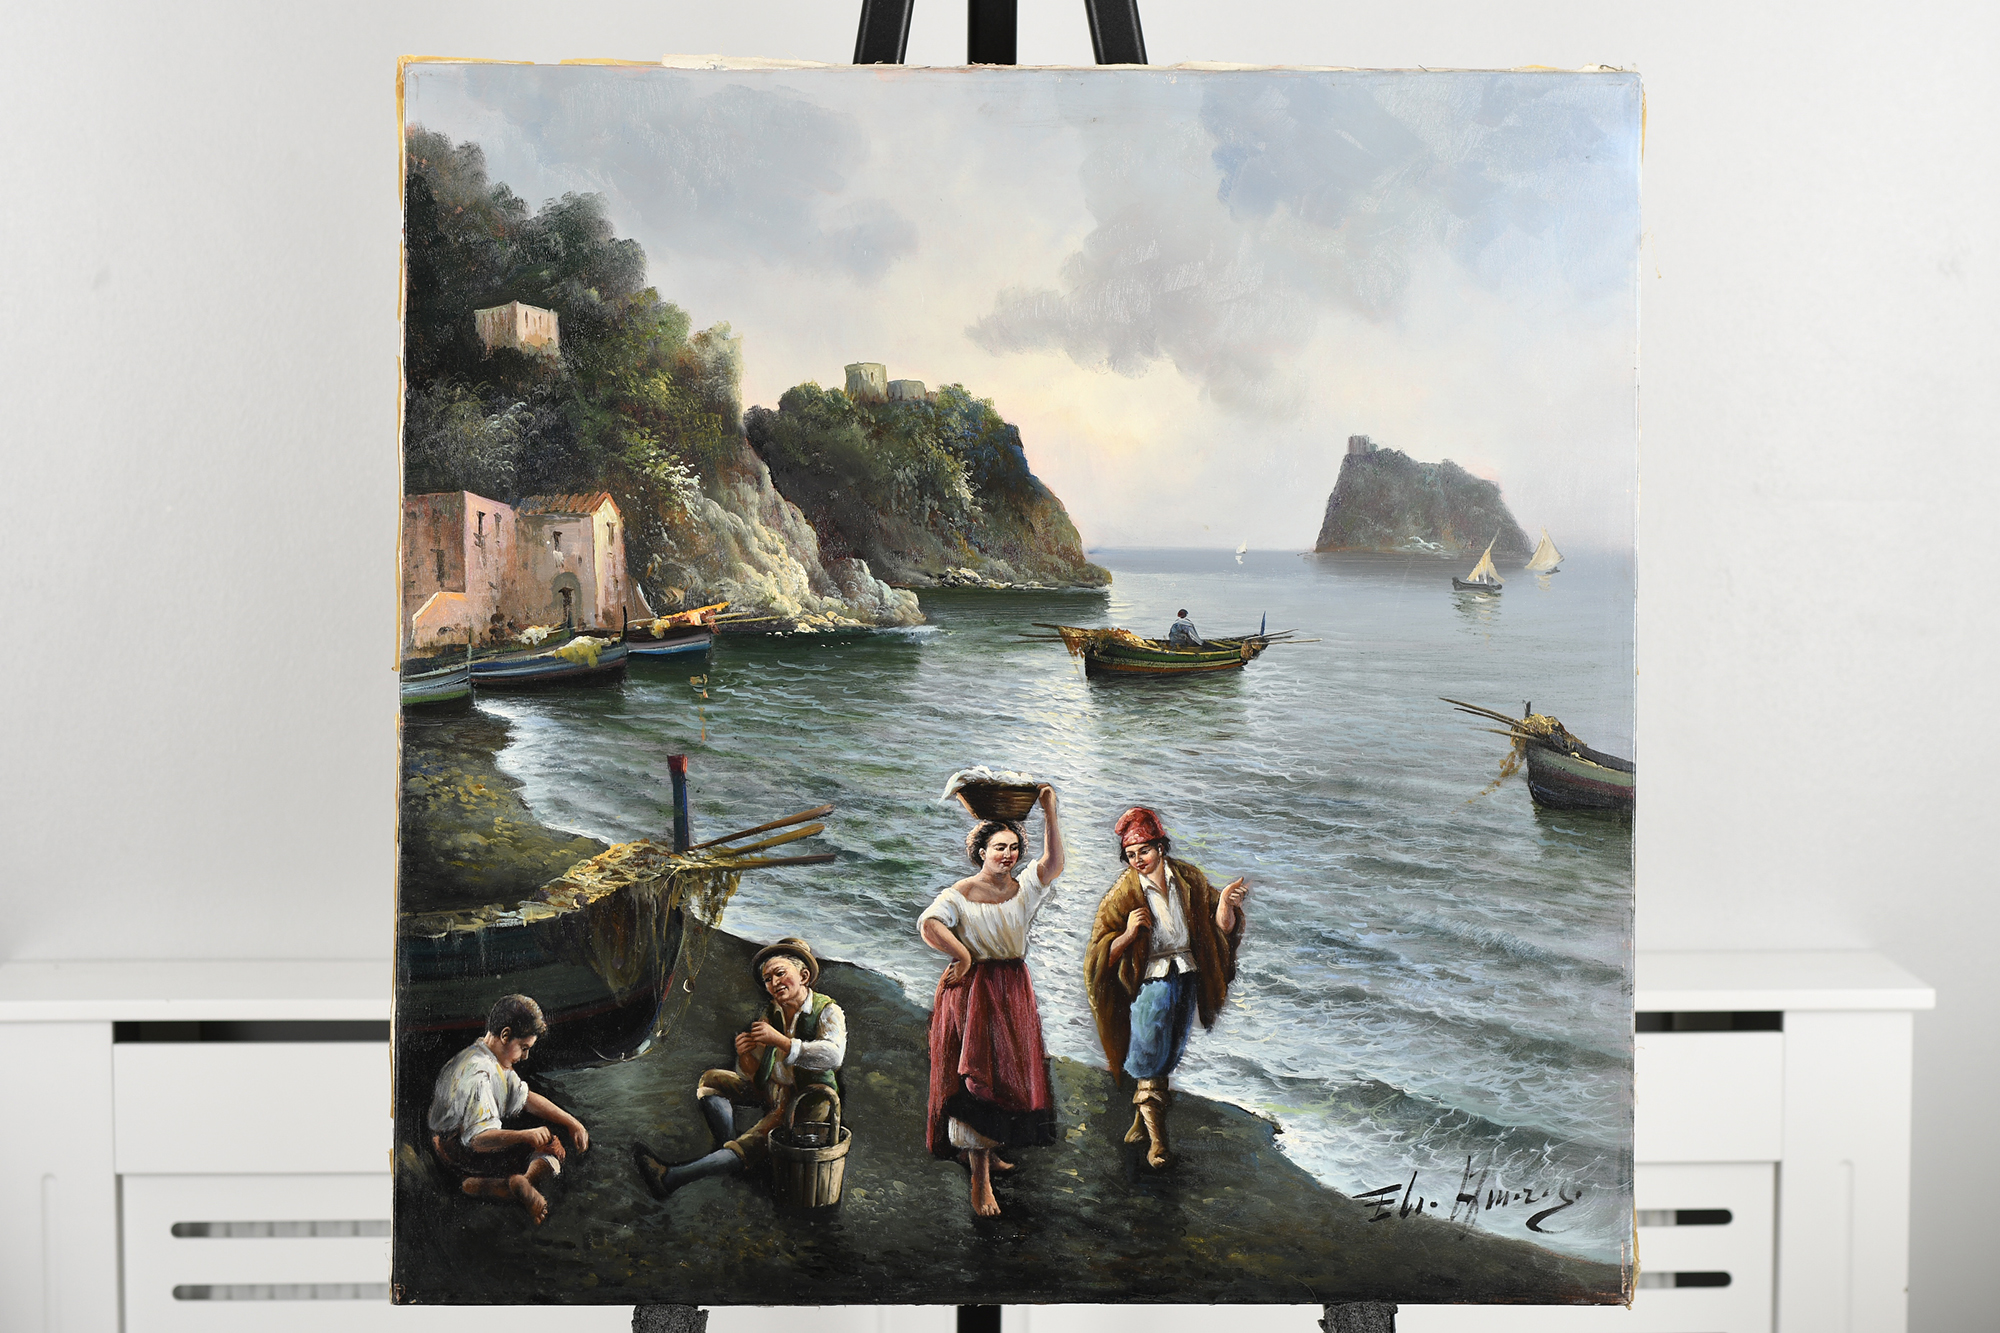 Oil on Canvas by Italian artist Amoroso - Image 11 of 11